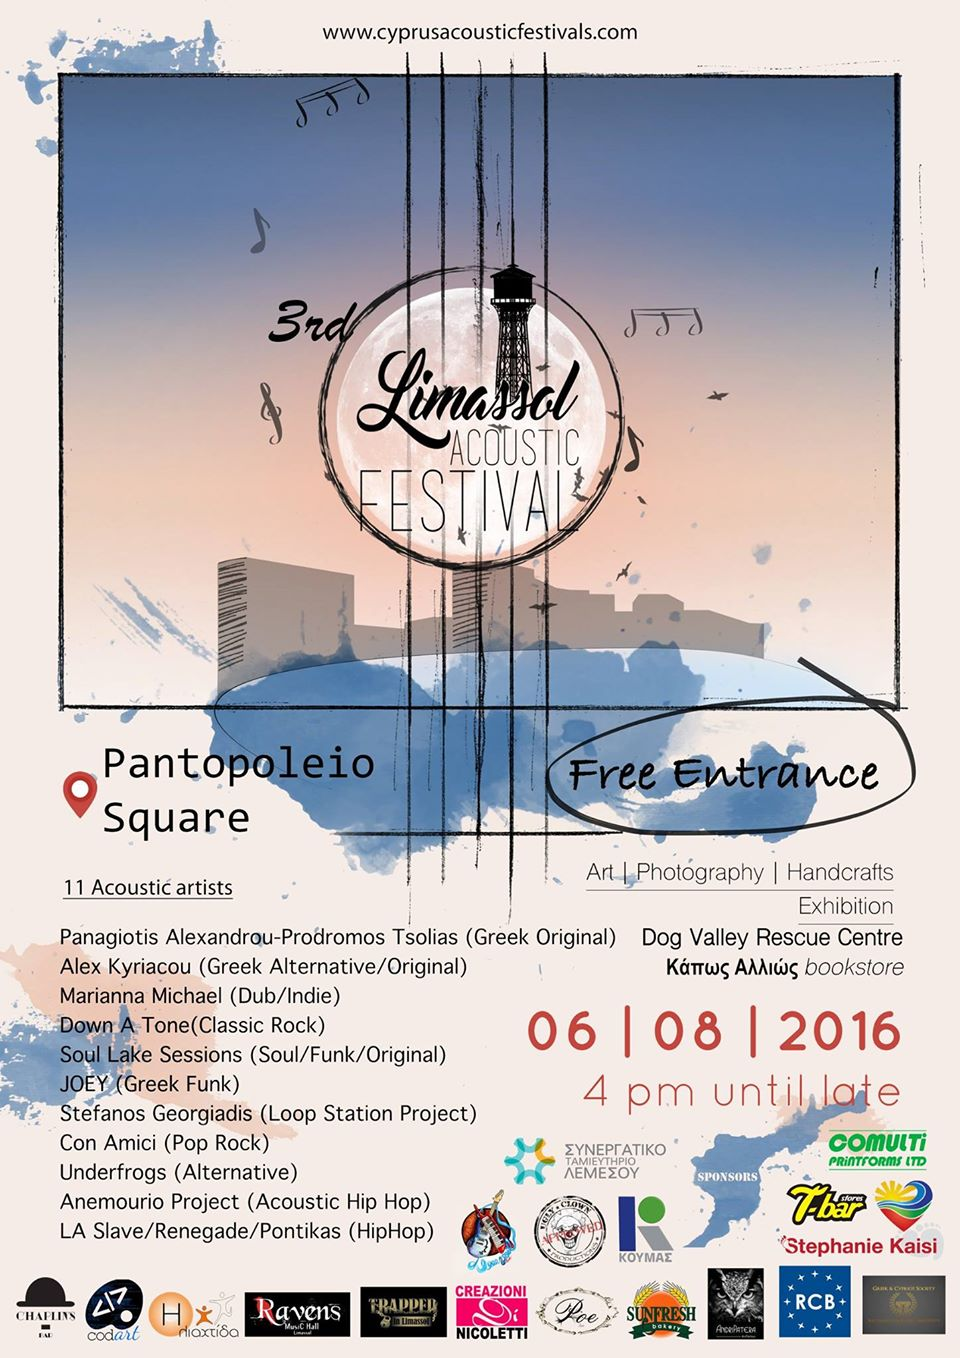 Limassol Acoustic Festival Cover Image on XploreCyprus